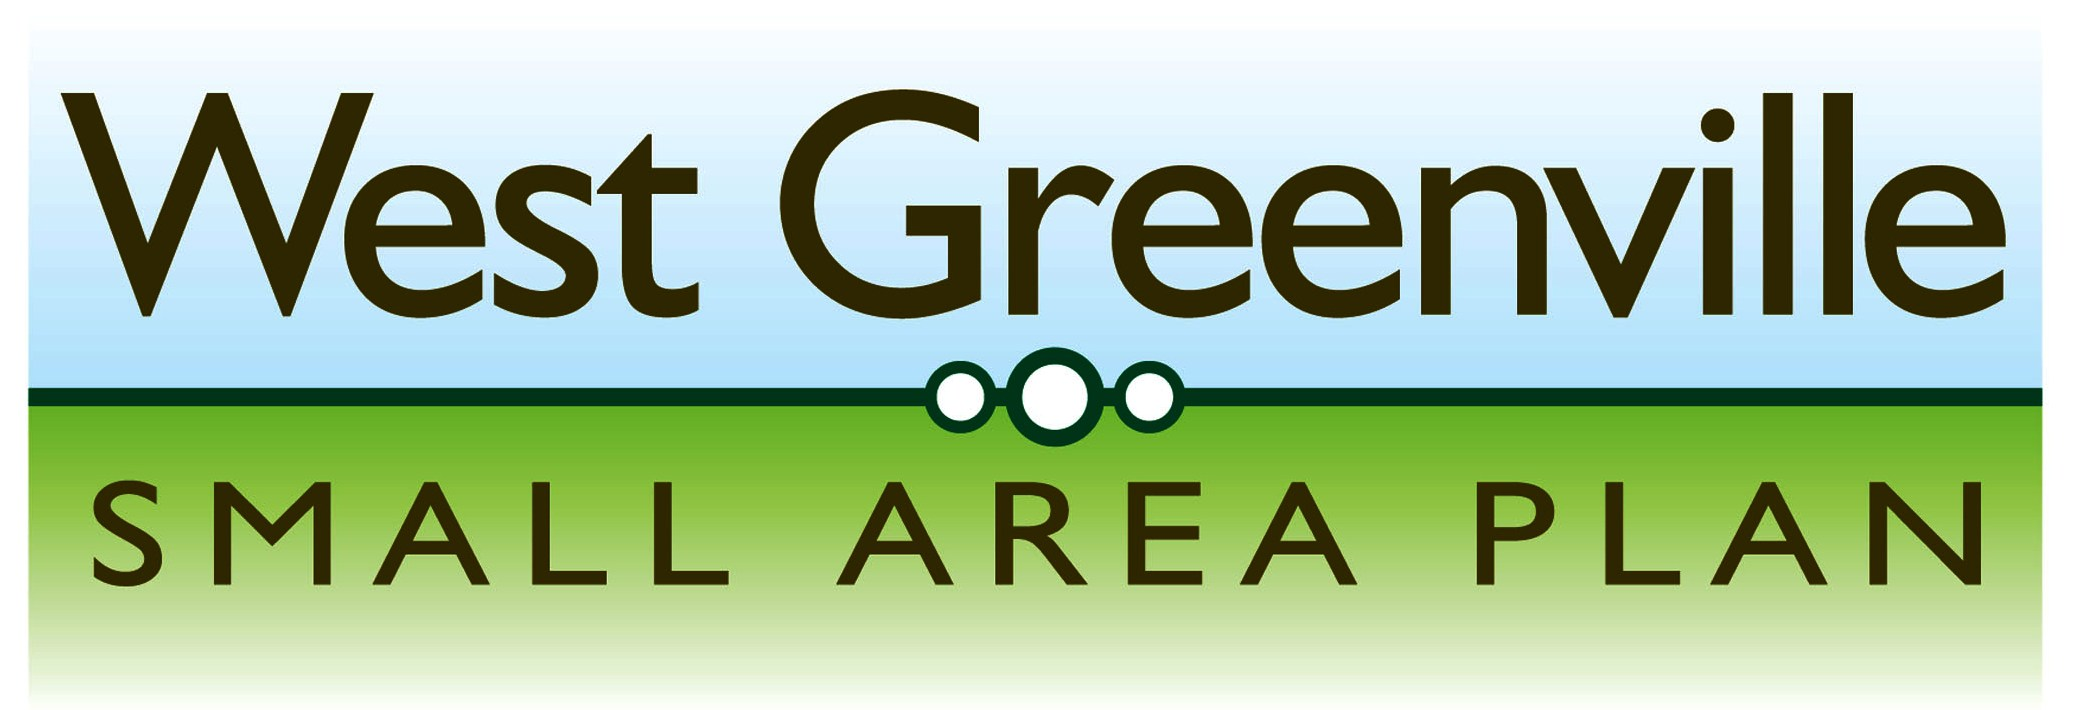 West Greenville Small Area Plan Logo.jpg